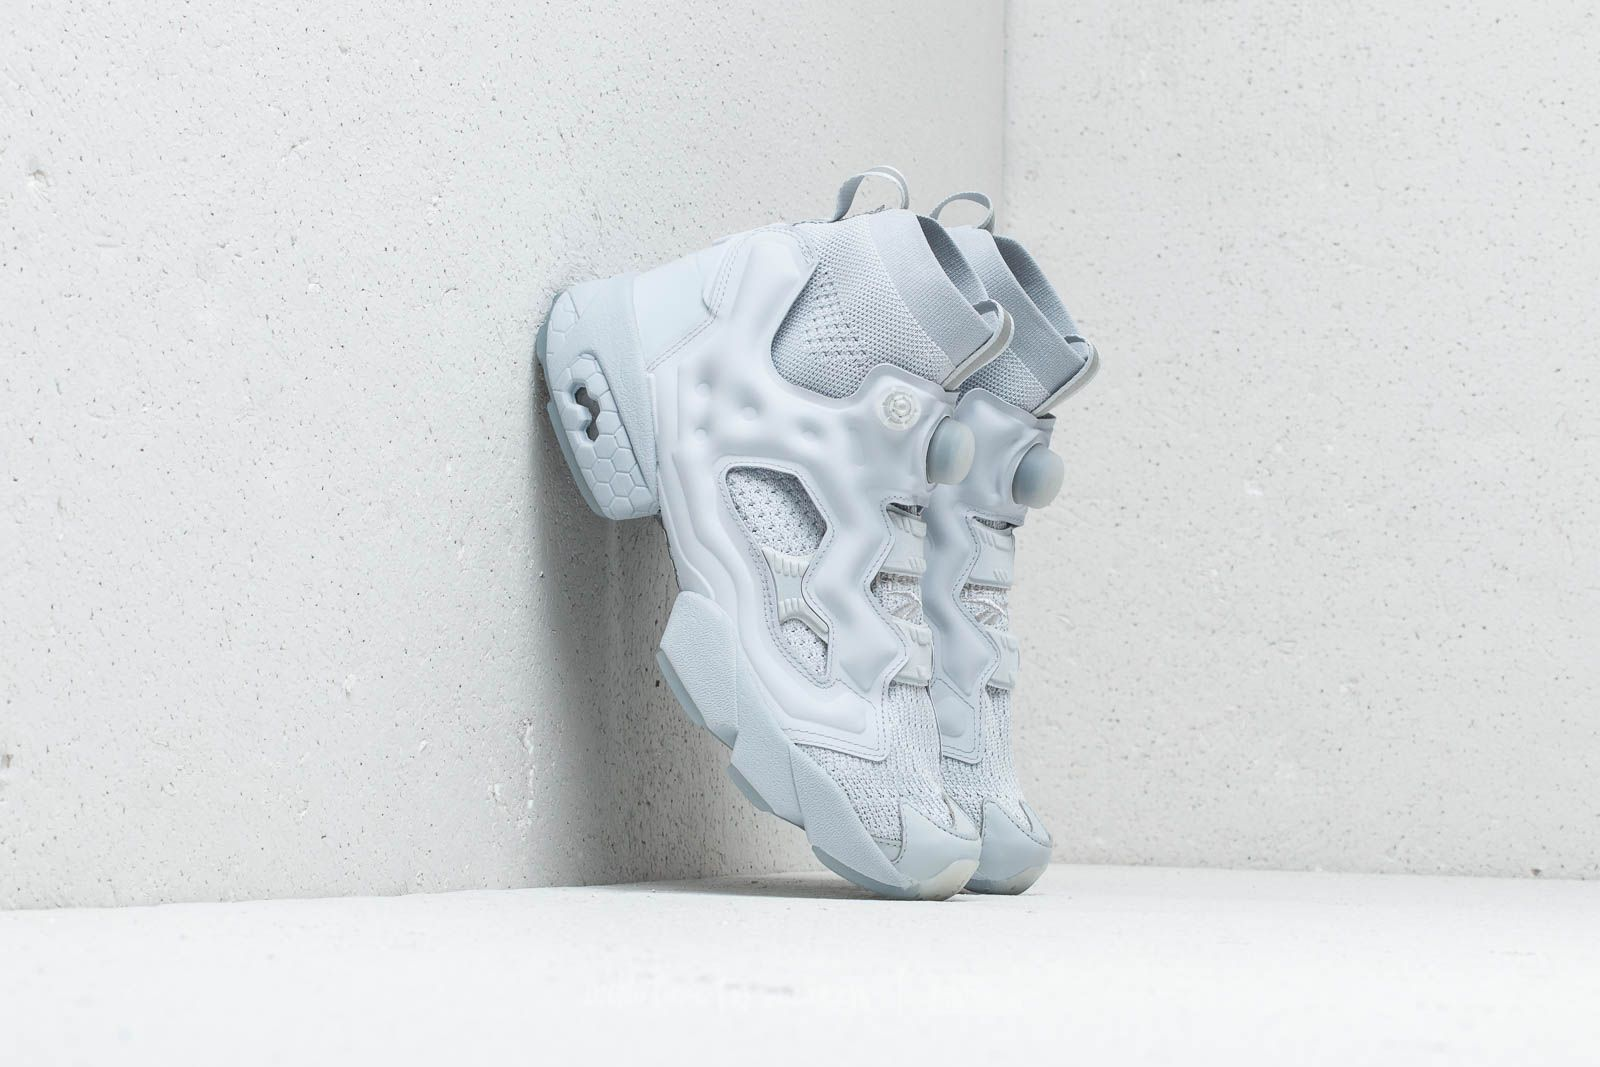 Reebok Instapump Fury OG Ultraknit Cloud Grey Digital Green | Footshop